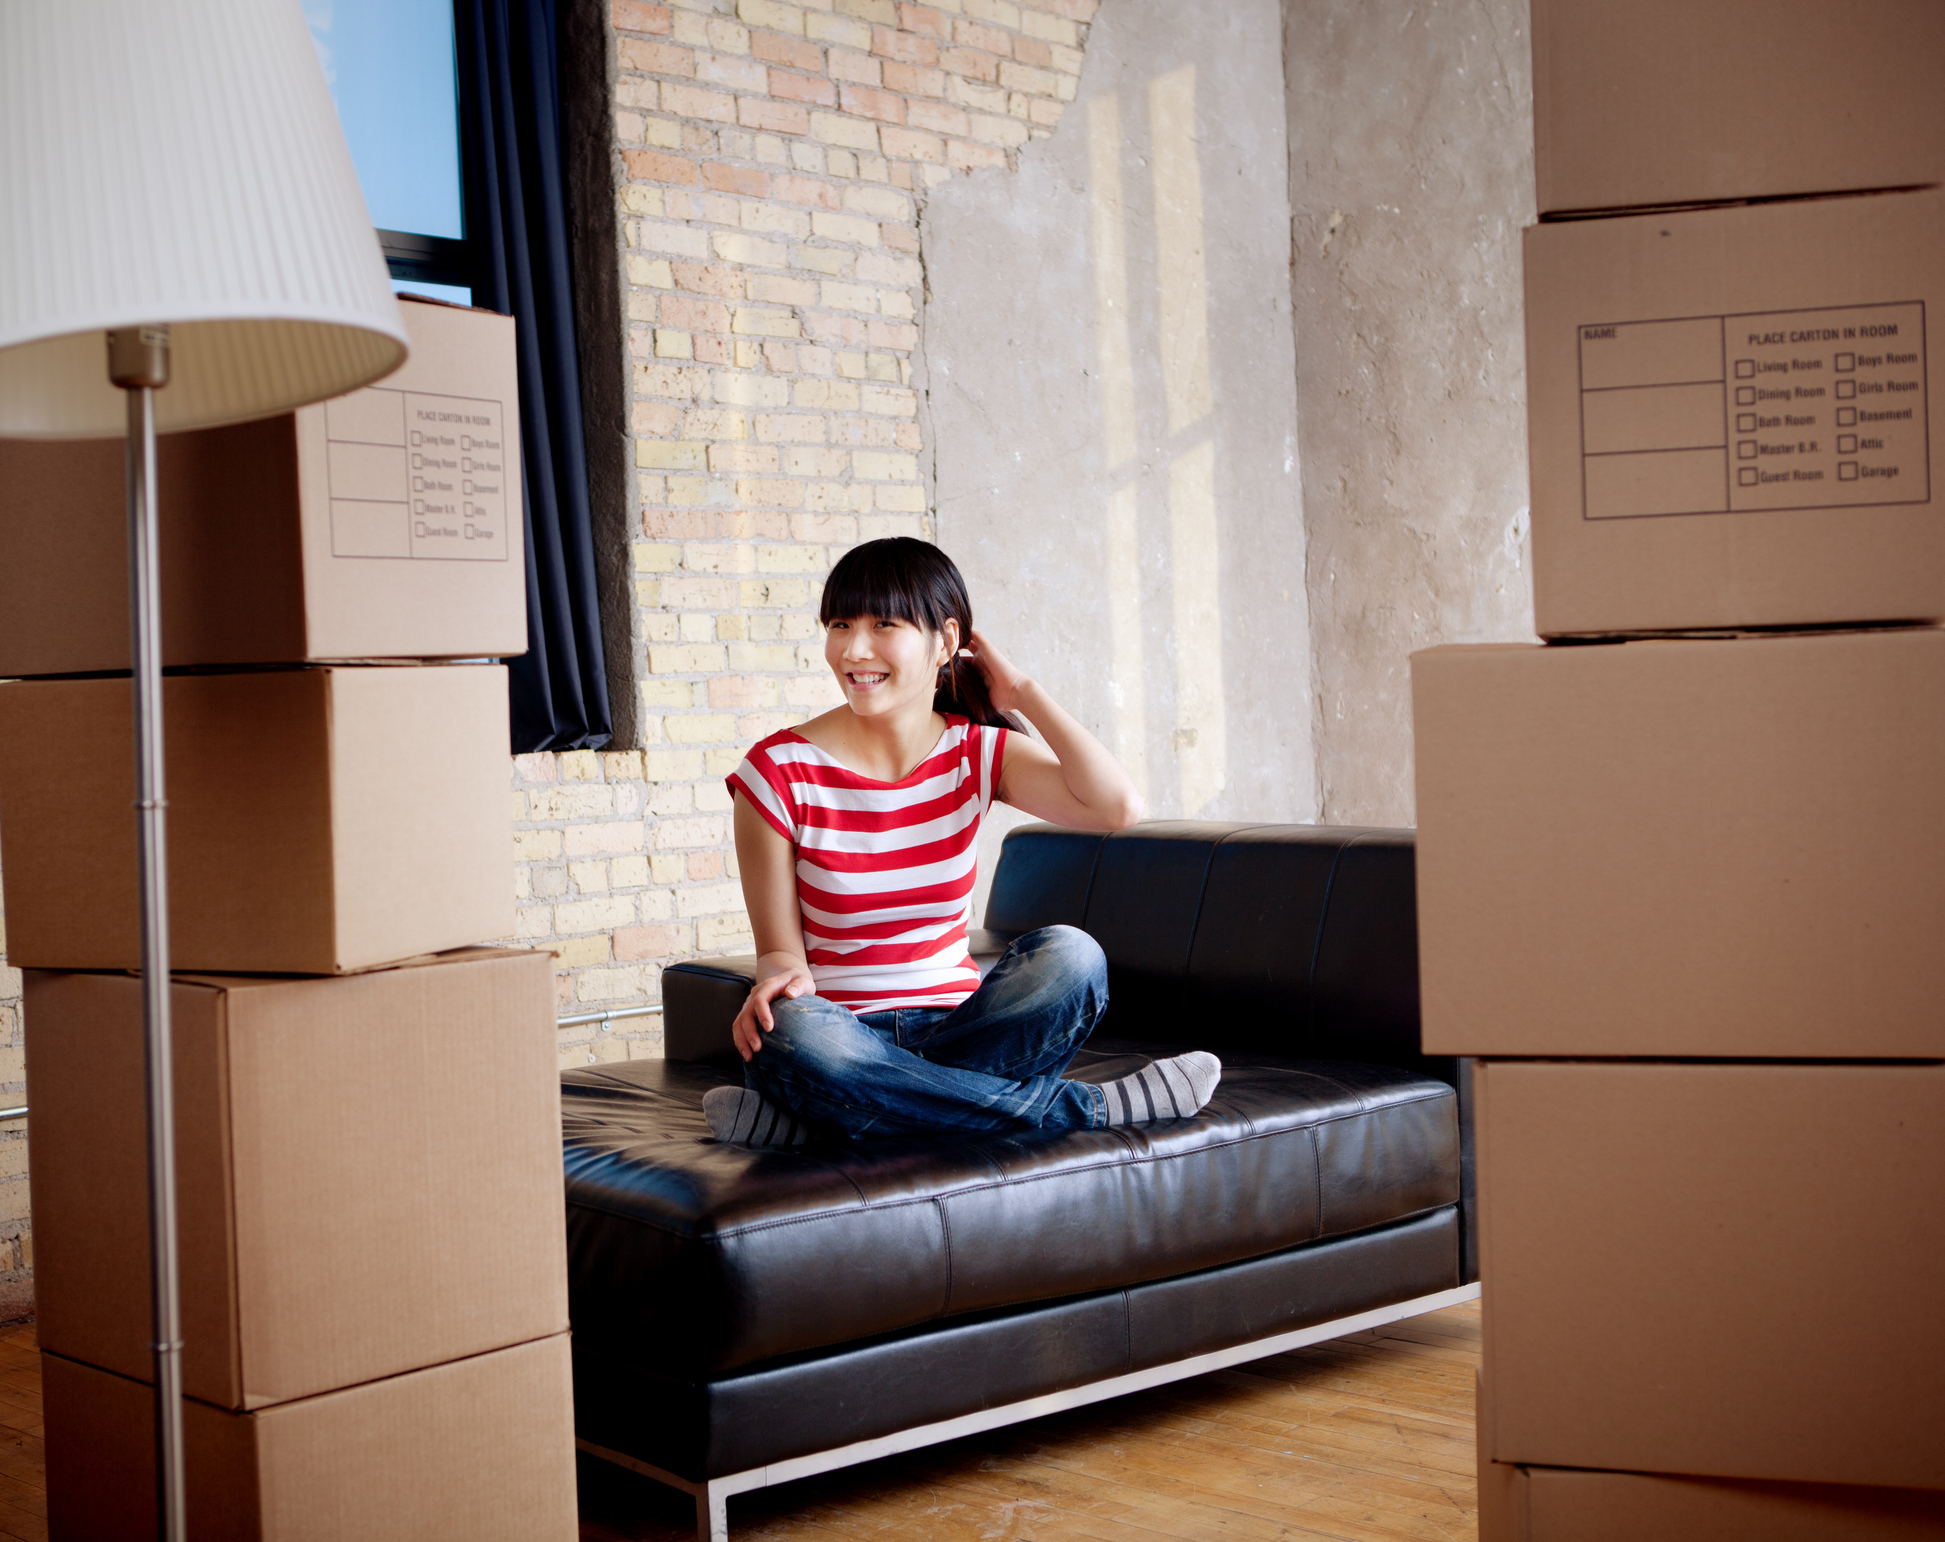 Subject: Horizontal view of a young Asian woman sitting cross legged on a sofa, surrounded by moving boxes. The interior suggests that she is happy that she has just moved into an urban loft apartment or condo.